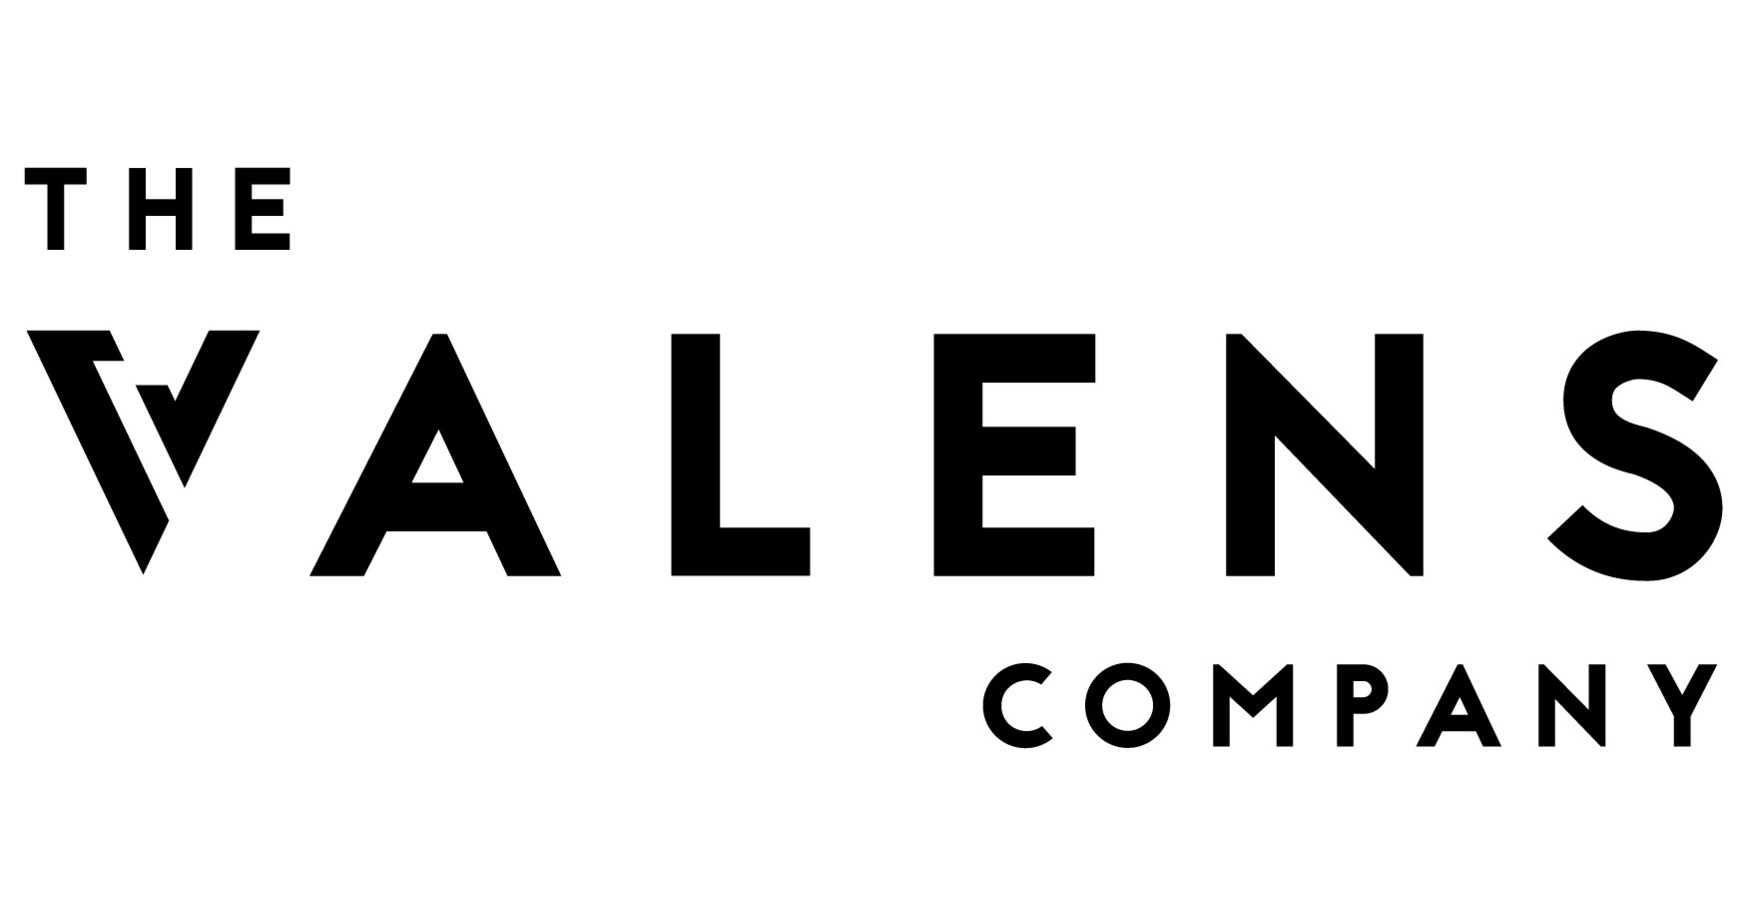 Valens Announces Revenue Guidance for Fourth Quarter 2019 and Intention to Commence a Normal Course Issuer Bid